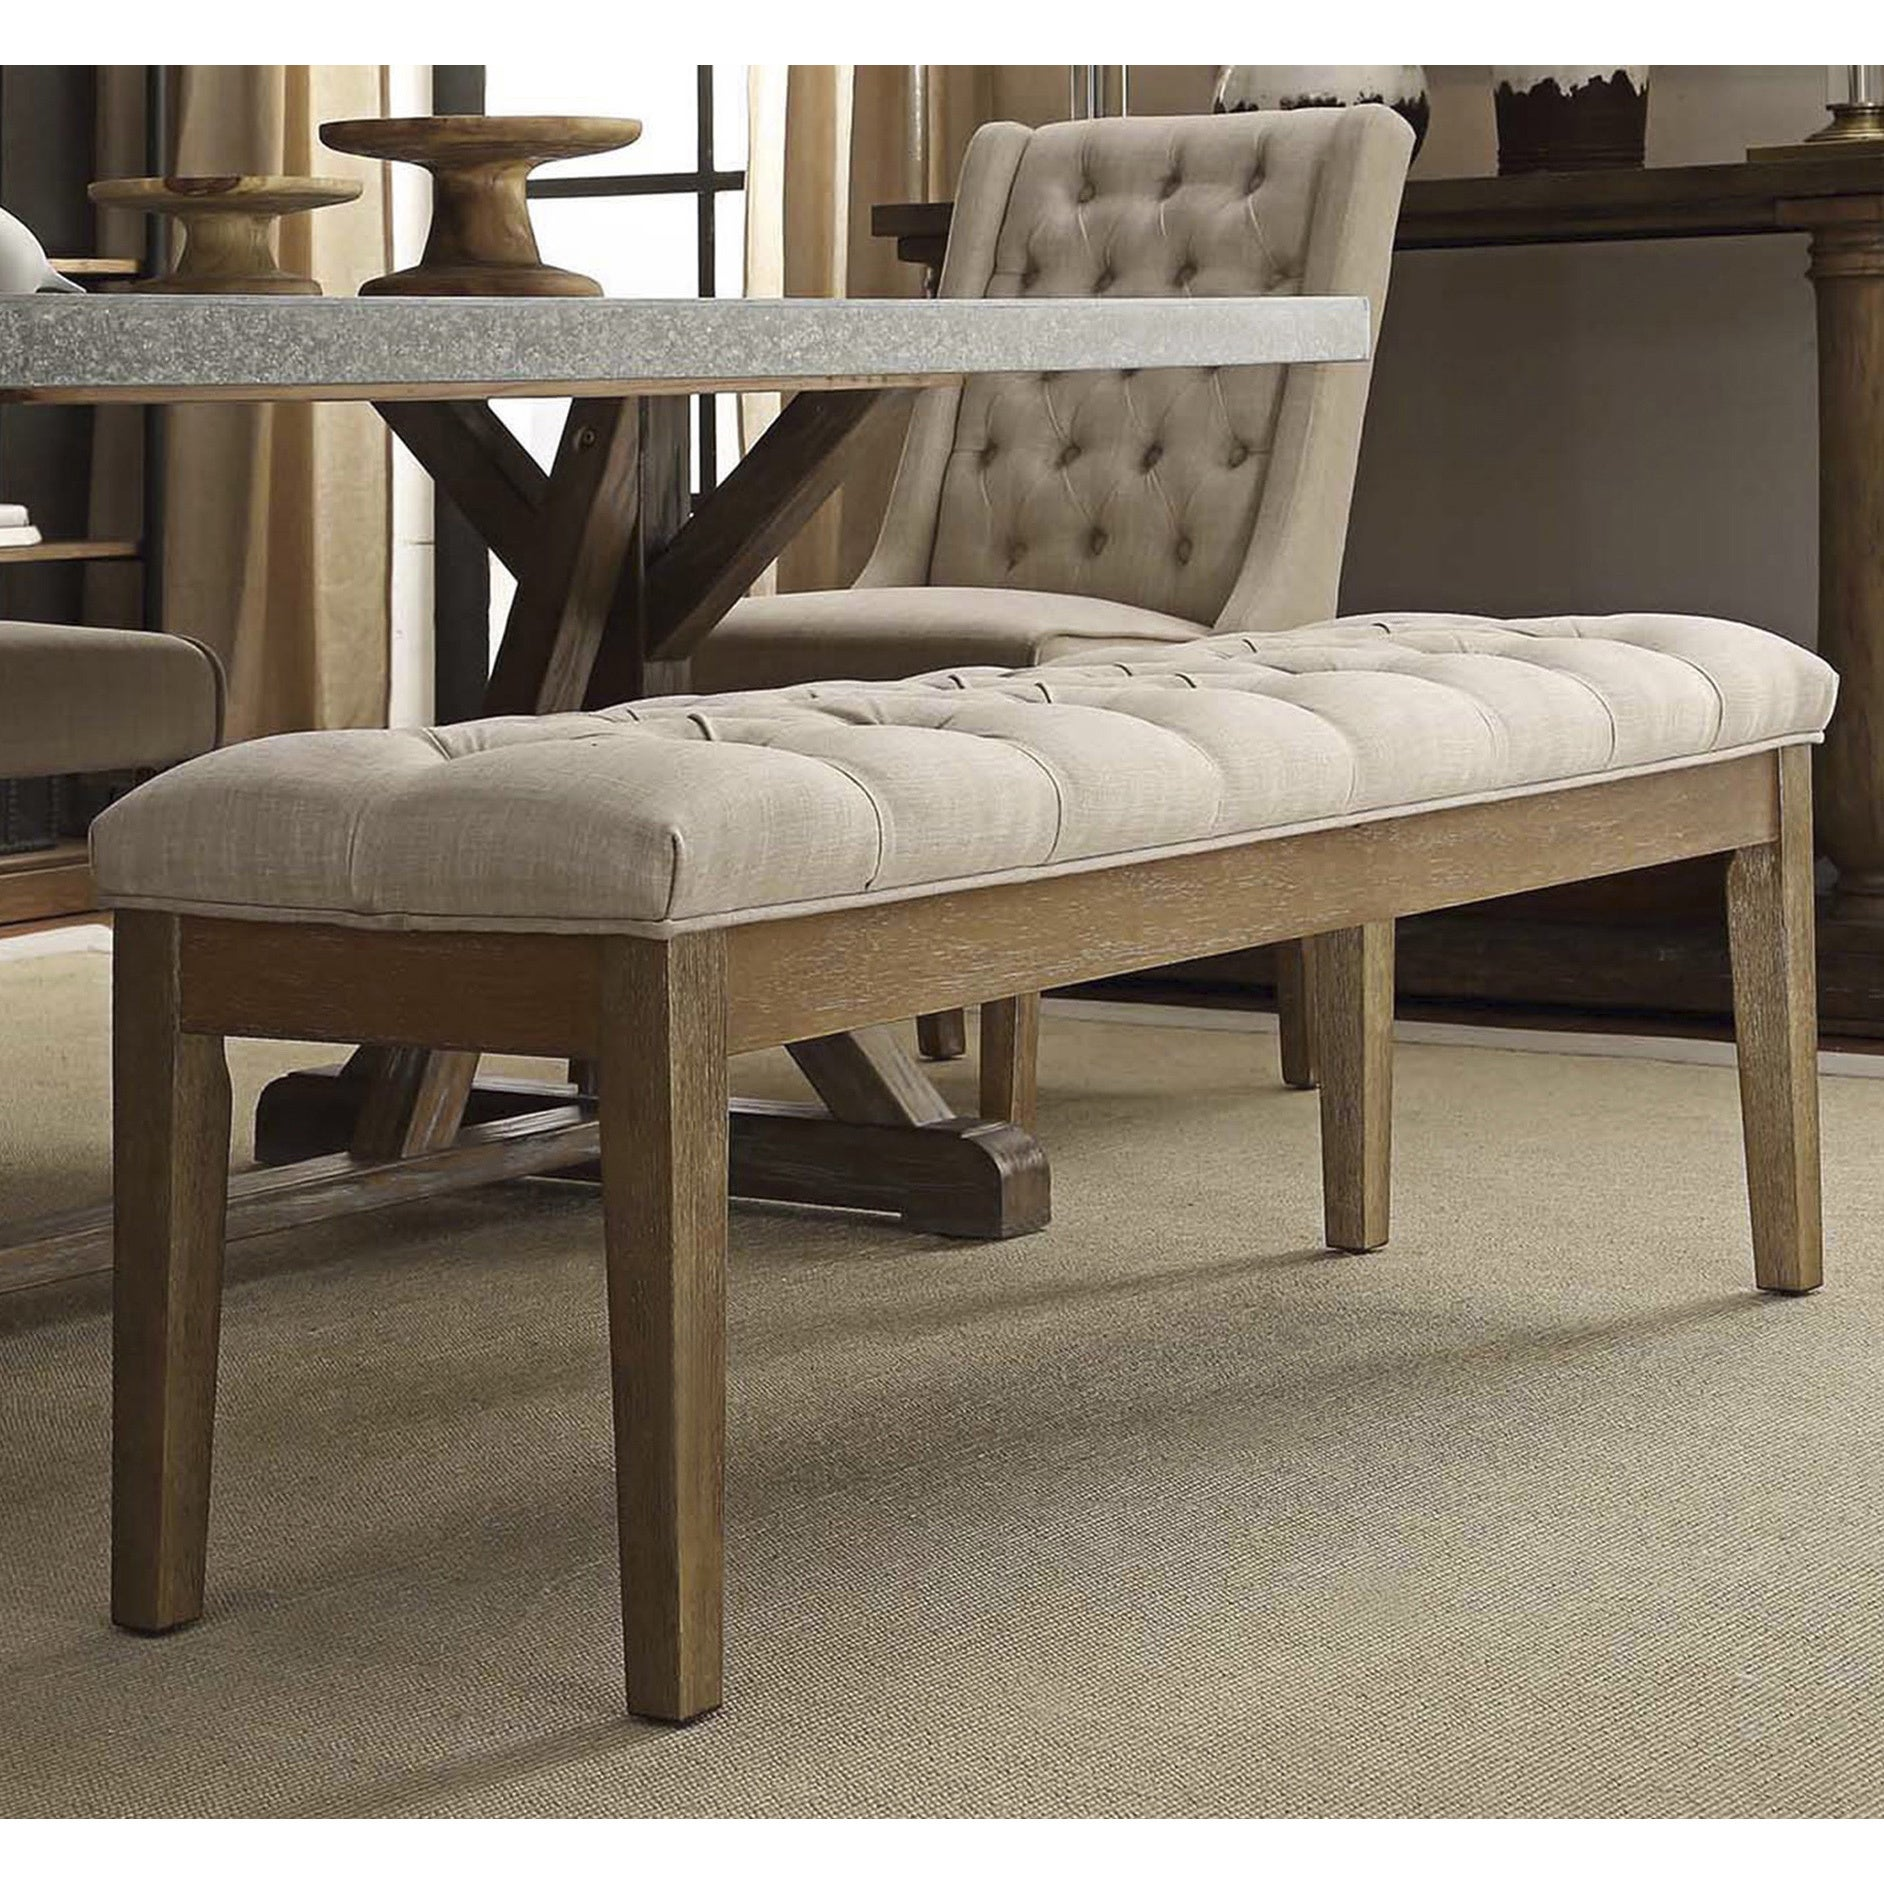 Shop Benchwright Premium Tufted Reclaimed 52-inch Upholstered Bench ...